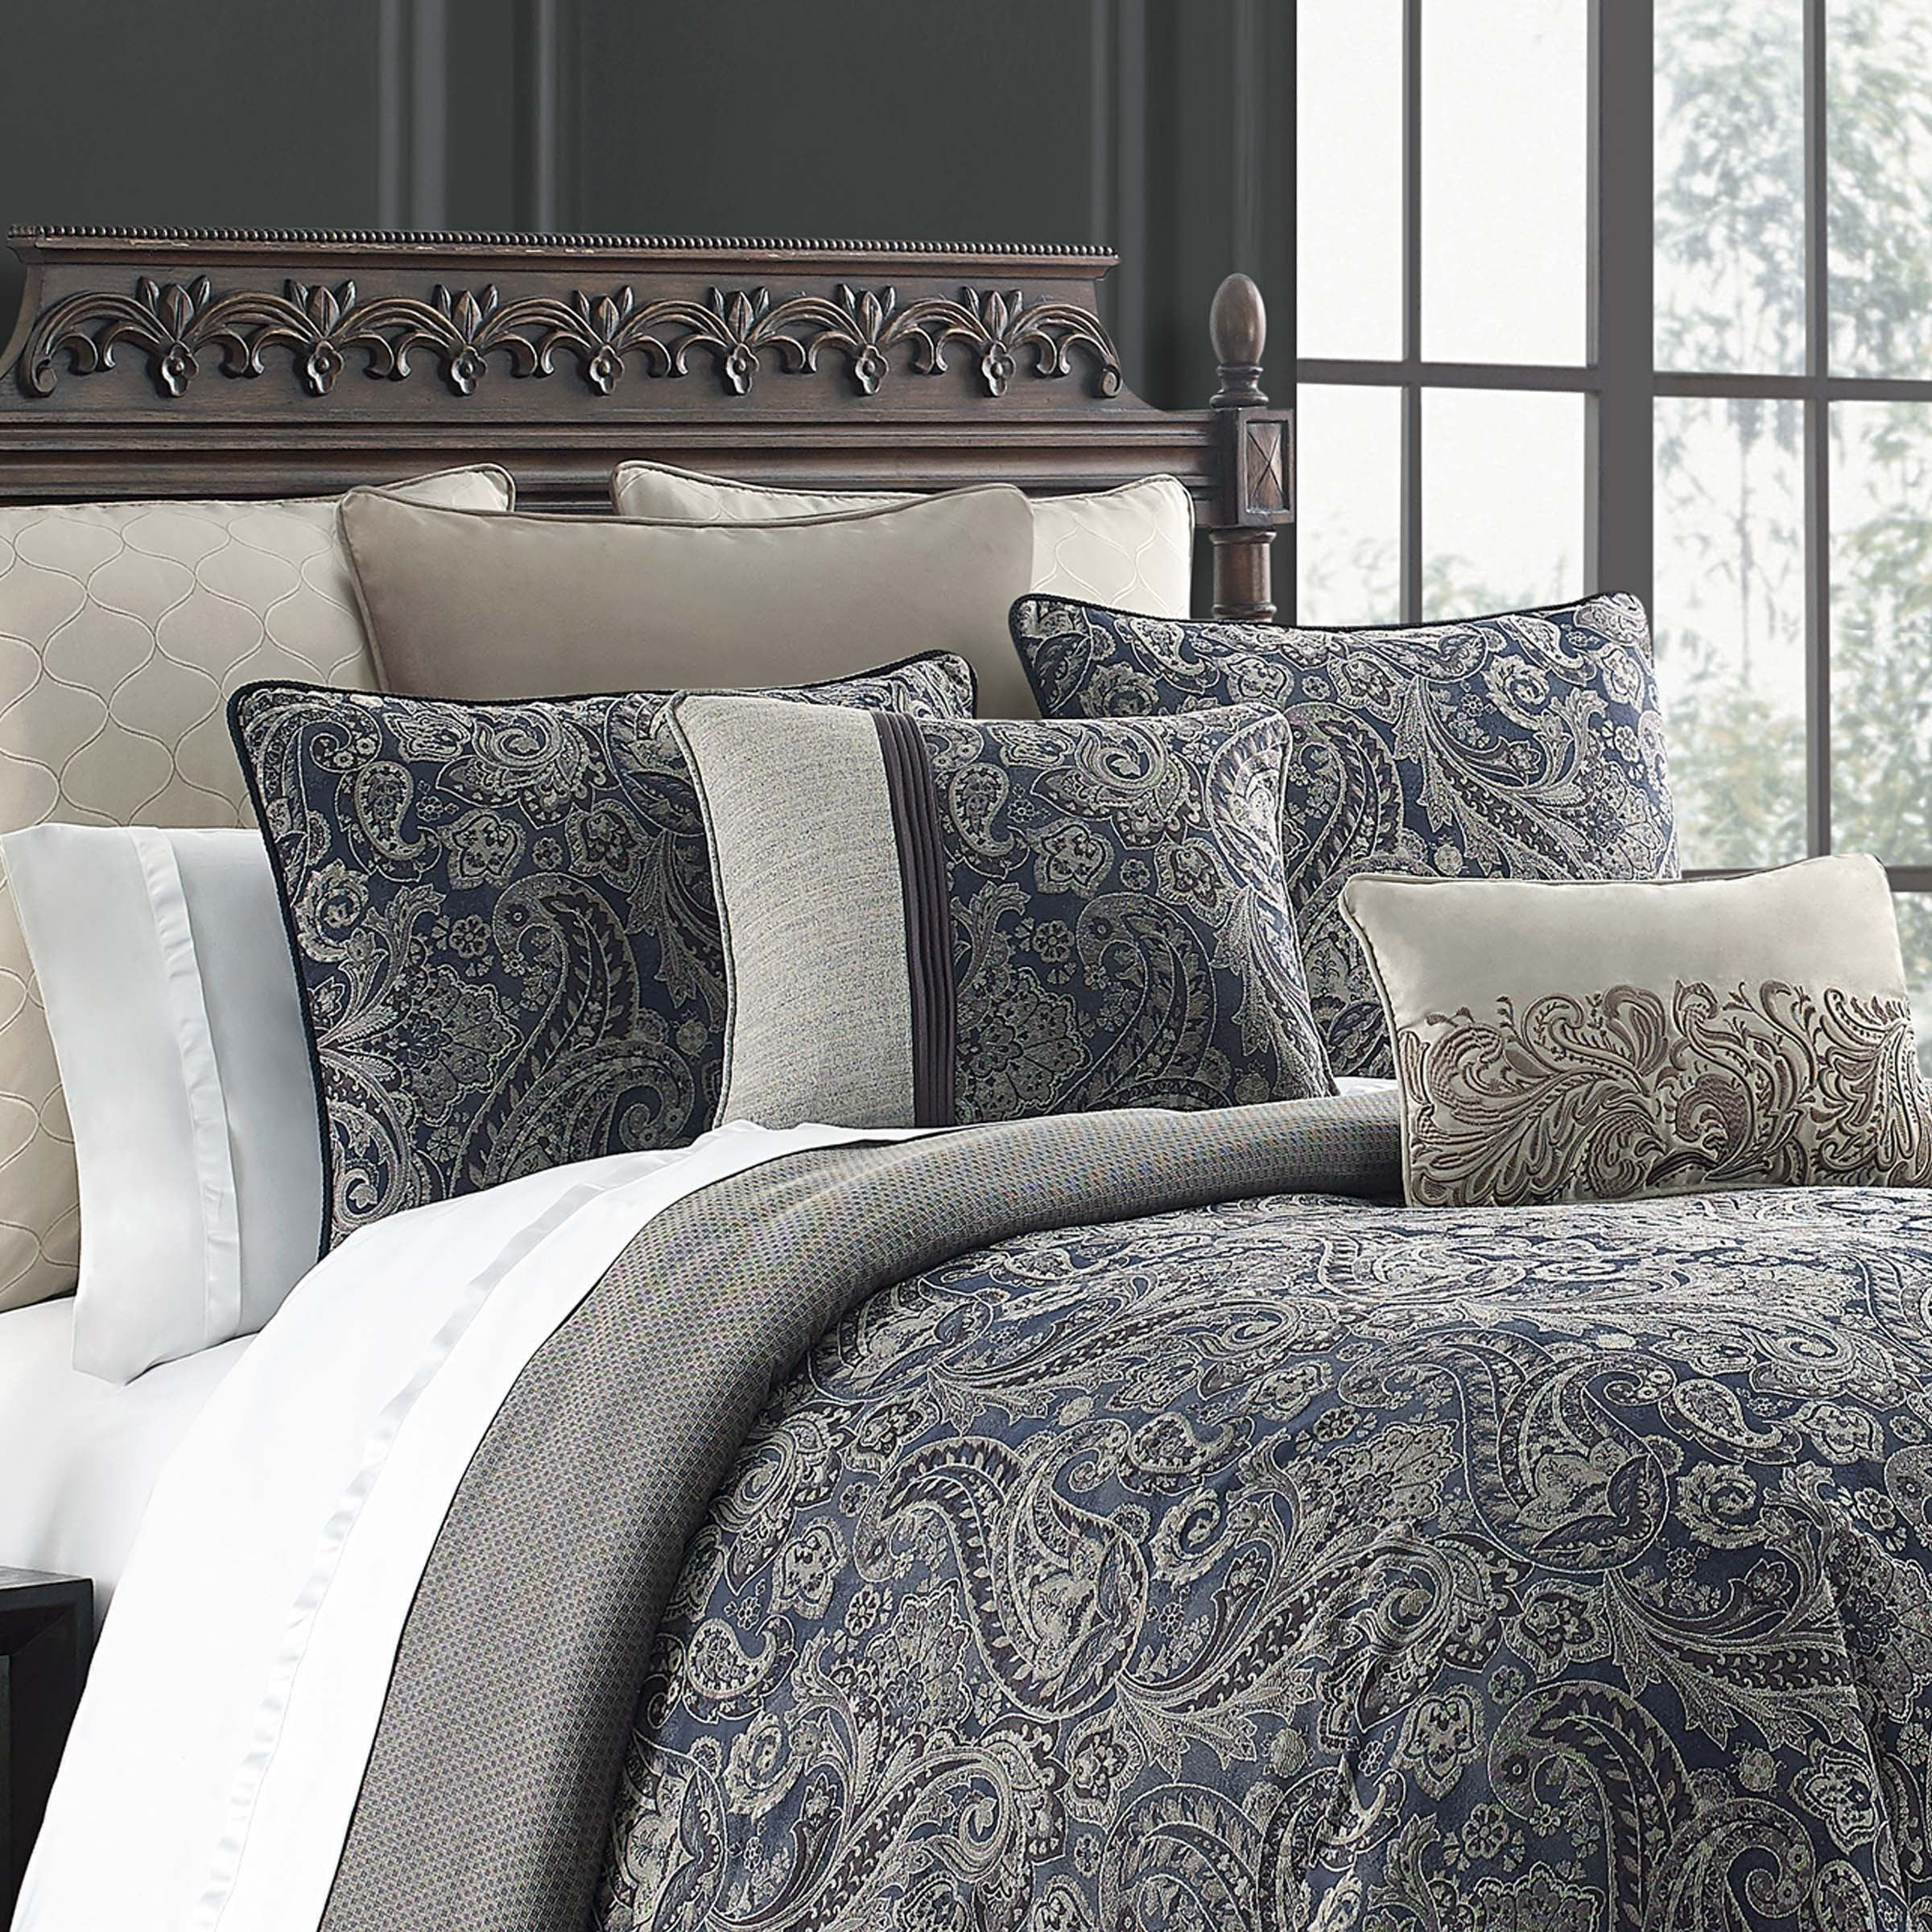 Danehill Blue 4-Piece Comforter Set Comforter Sets By Waterford